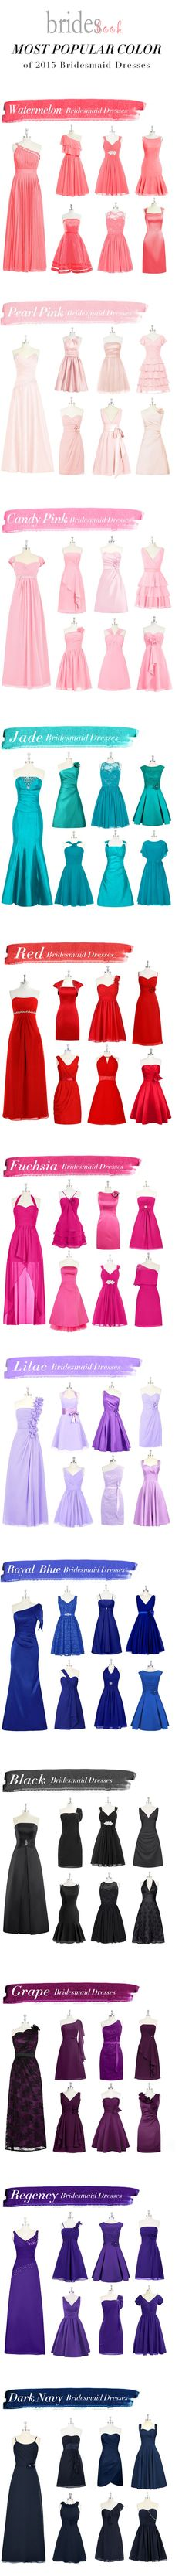 Whats hot for 2015 Bridesmaids Dress color trends